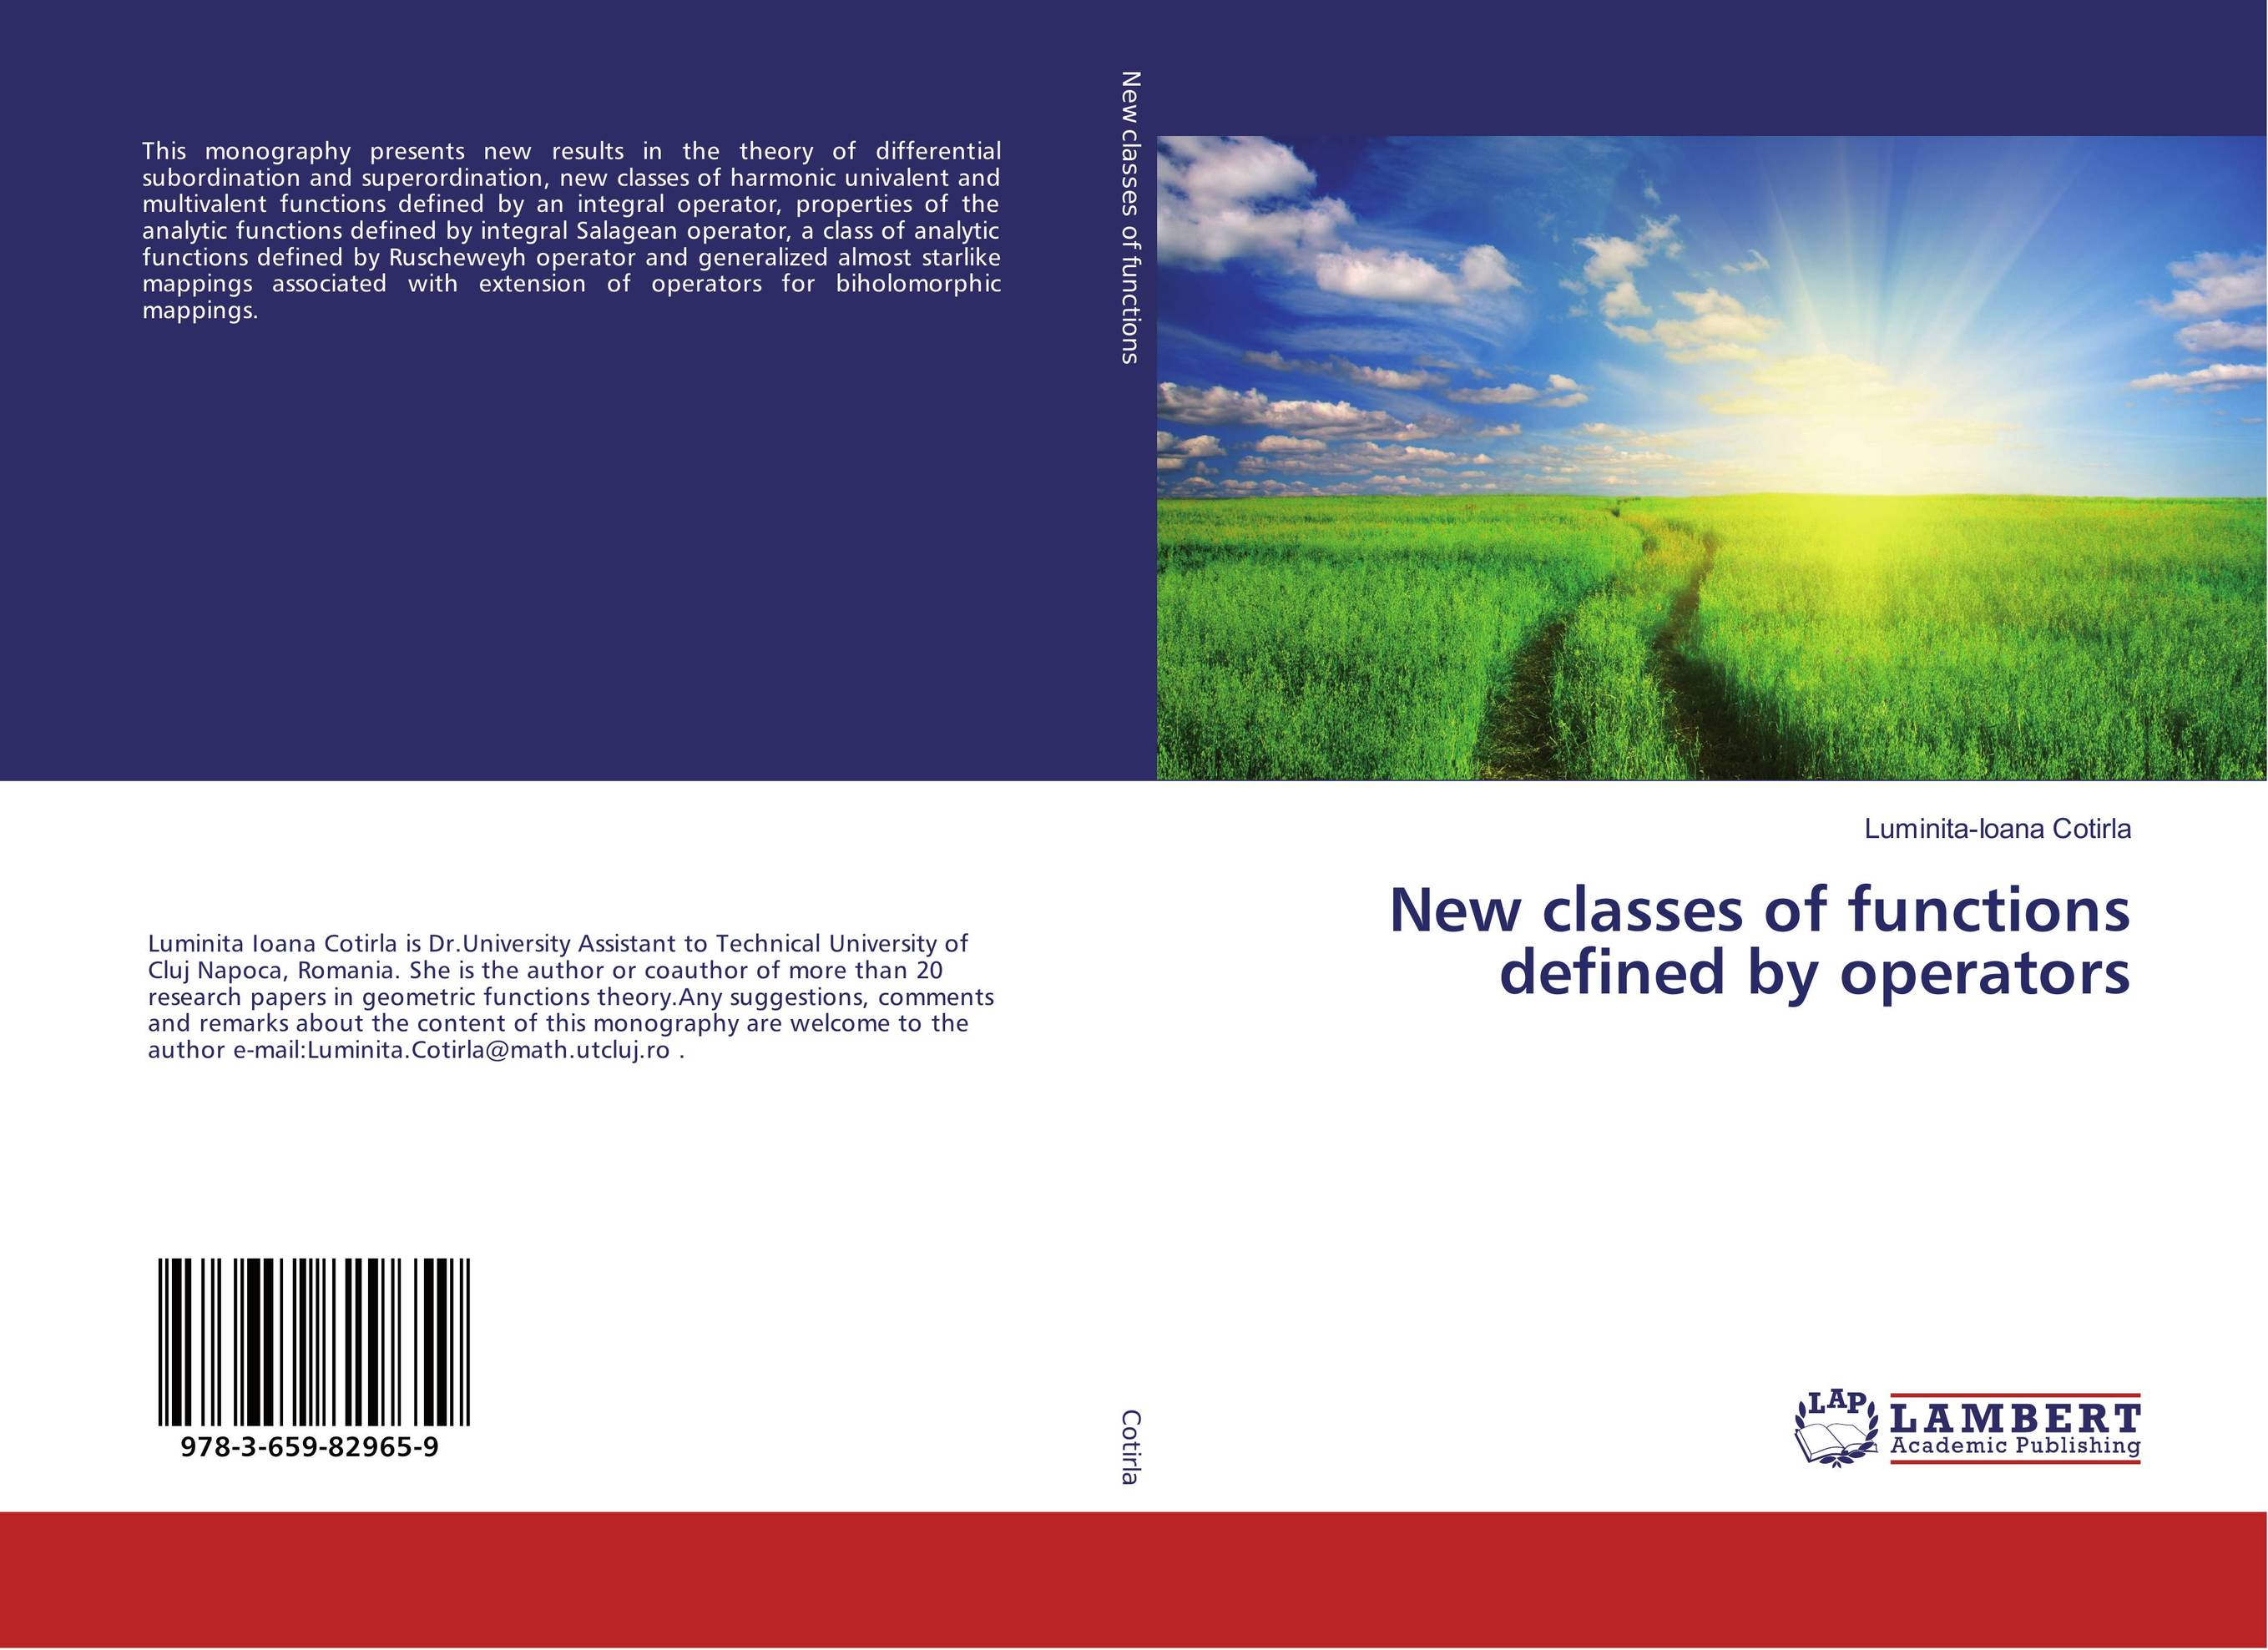 New classes of functions defined by operators gerald j murphy c algebras and operator theory